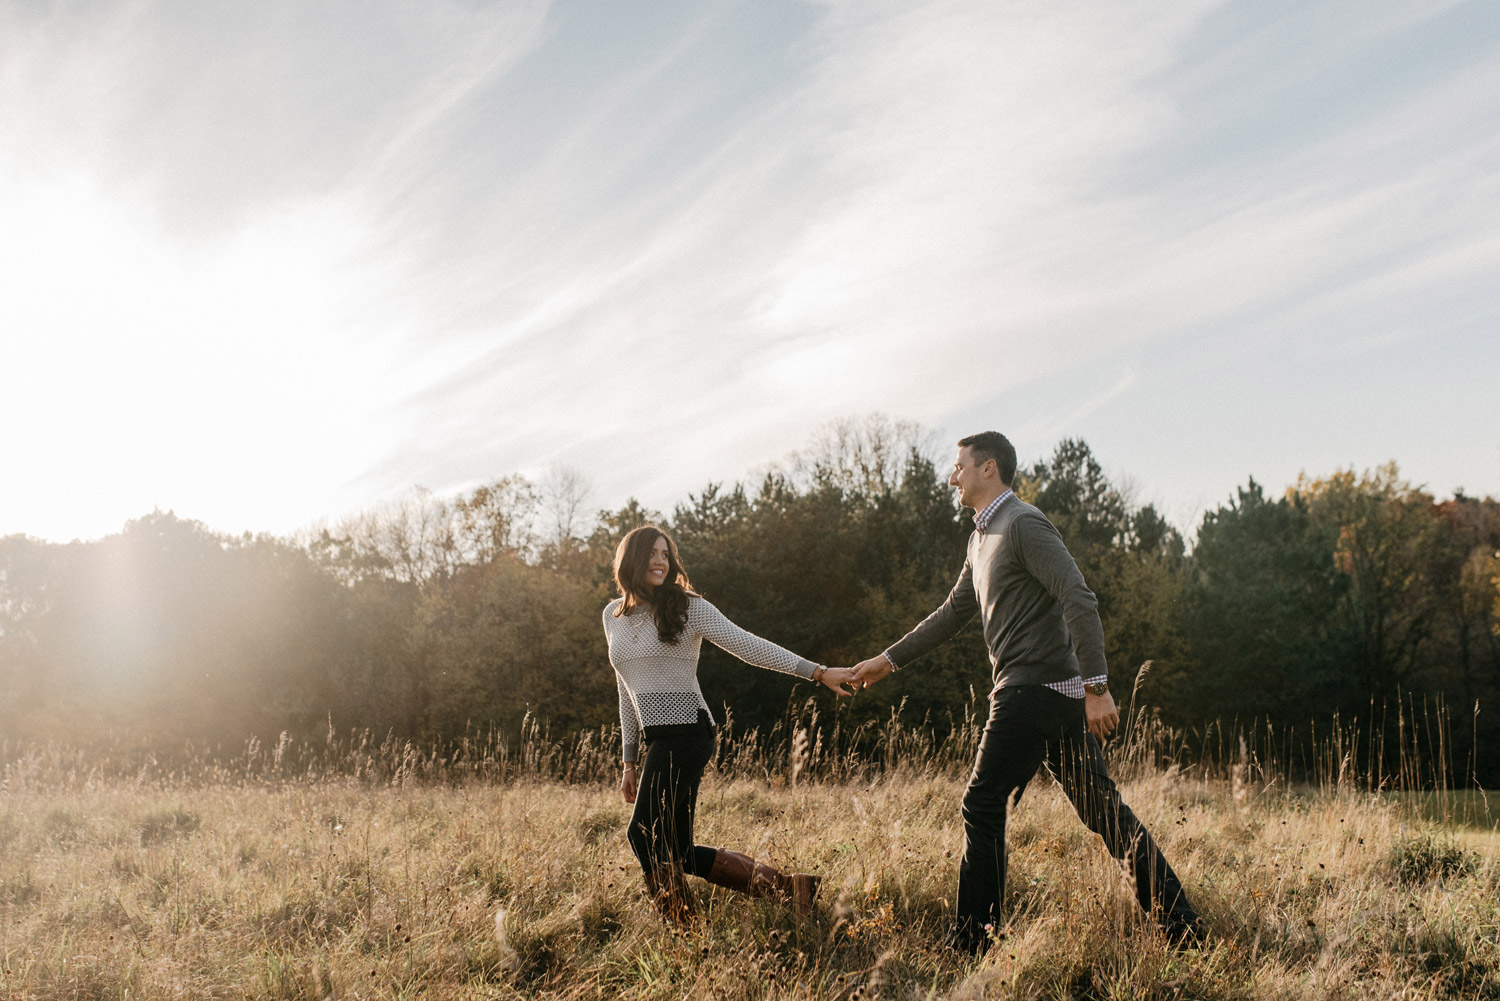 Fall sunset engagement photography by geneoh